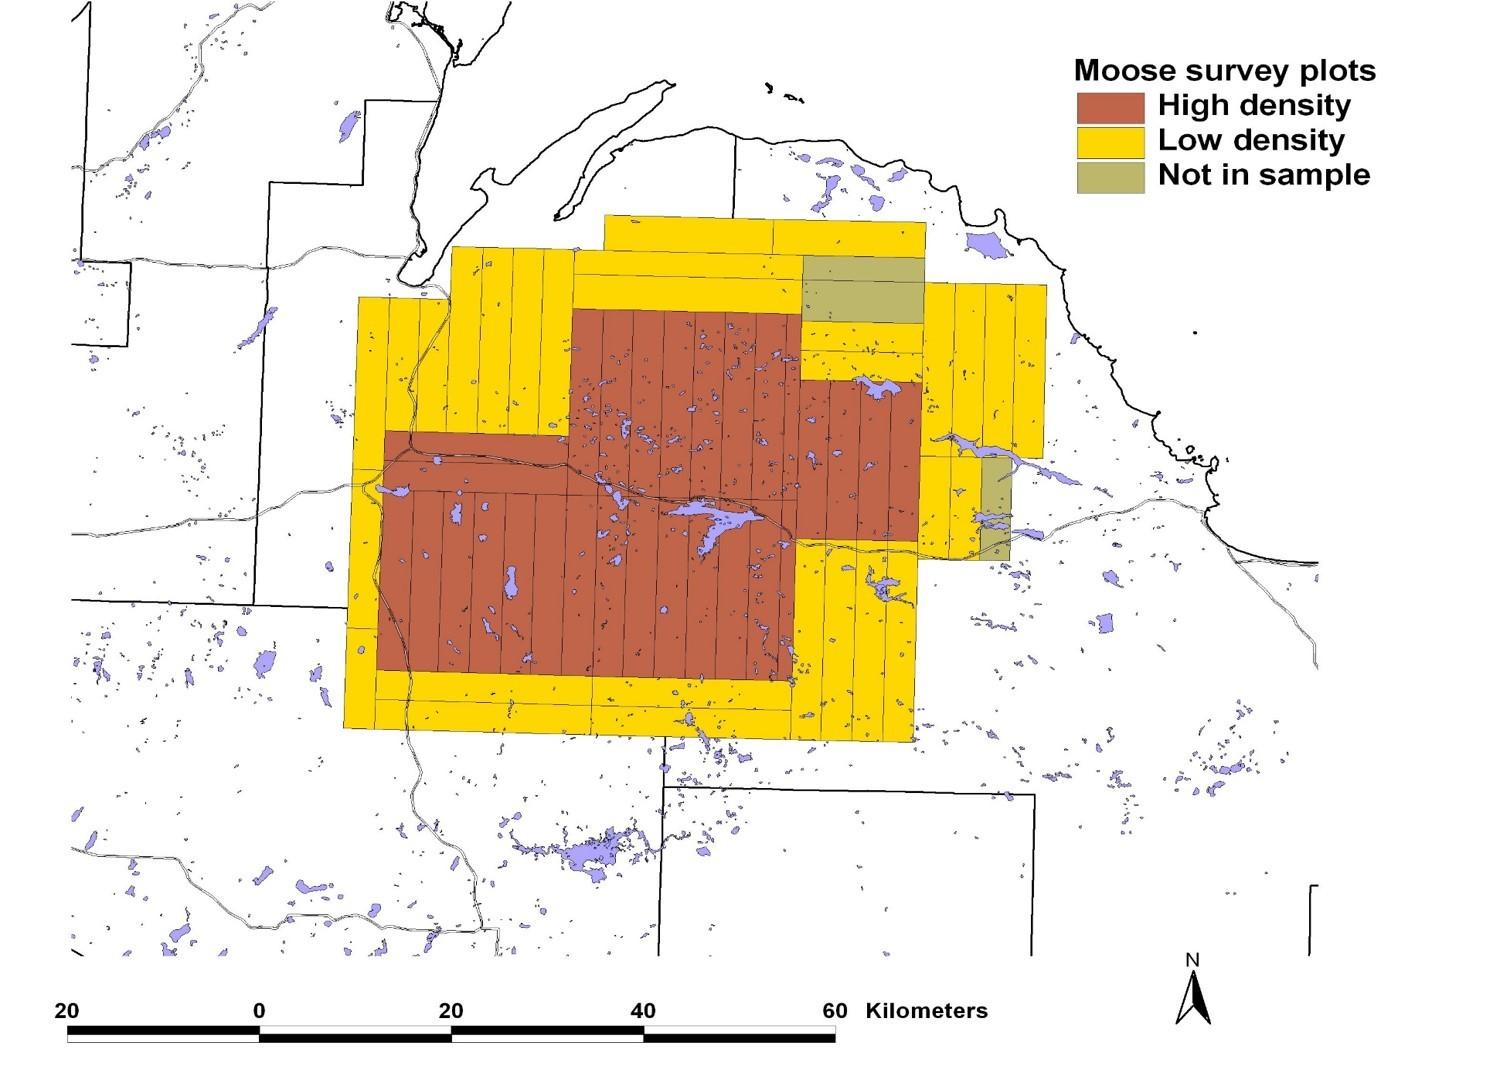 Dnr Reports Moose Survey Results